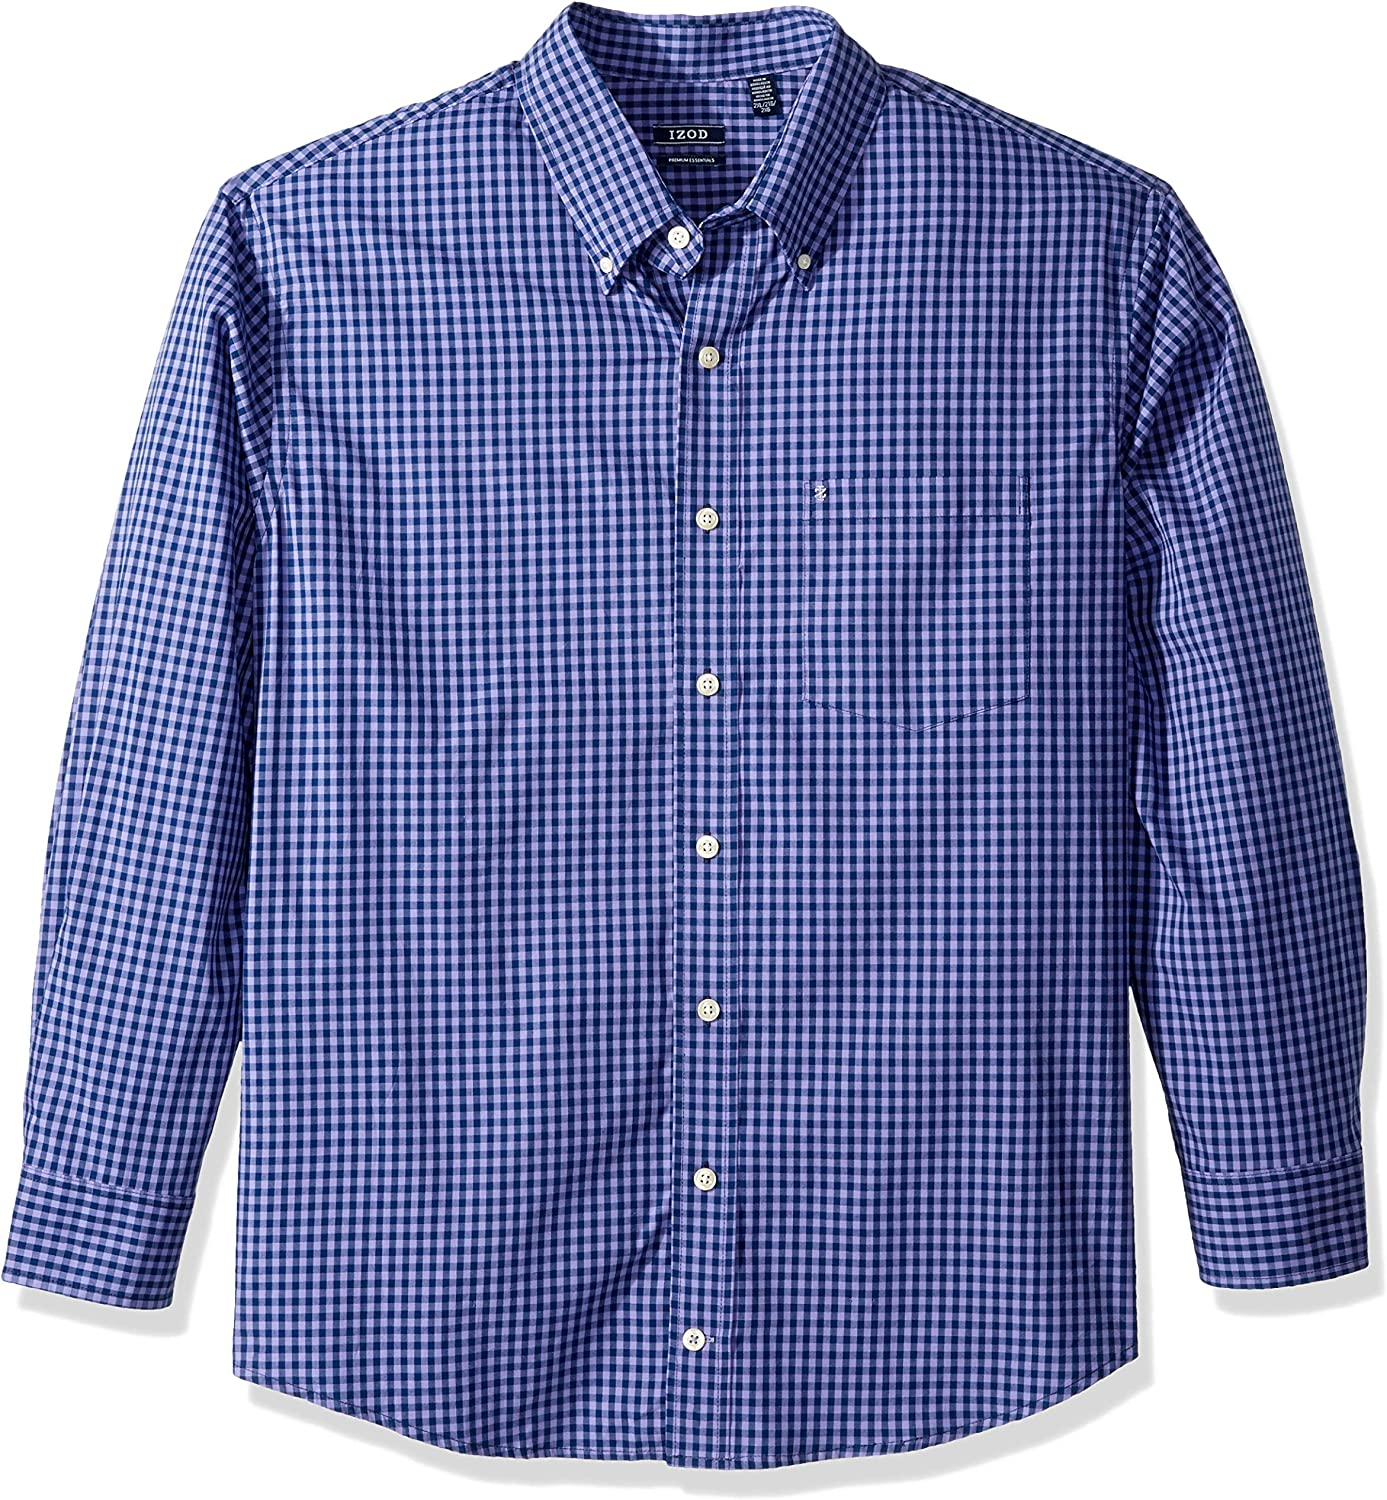 IZOD Men's Big and Tall Button Down Long Sleeve Performance Gingham Shirt (Discontinued)